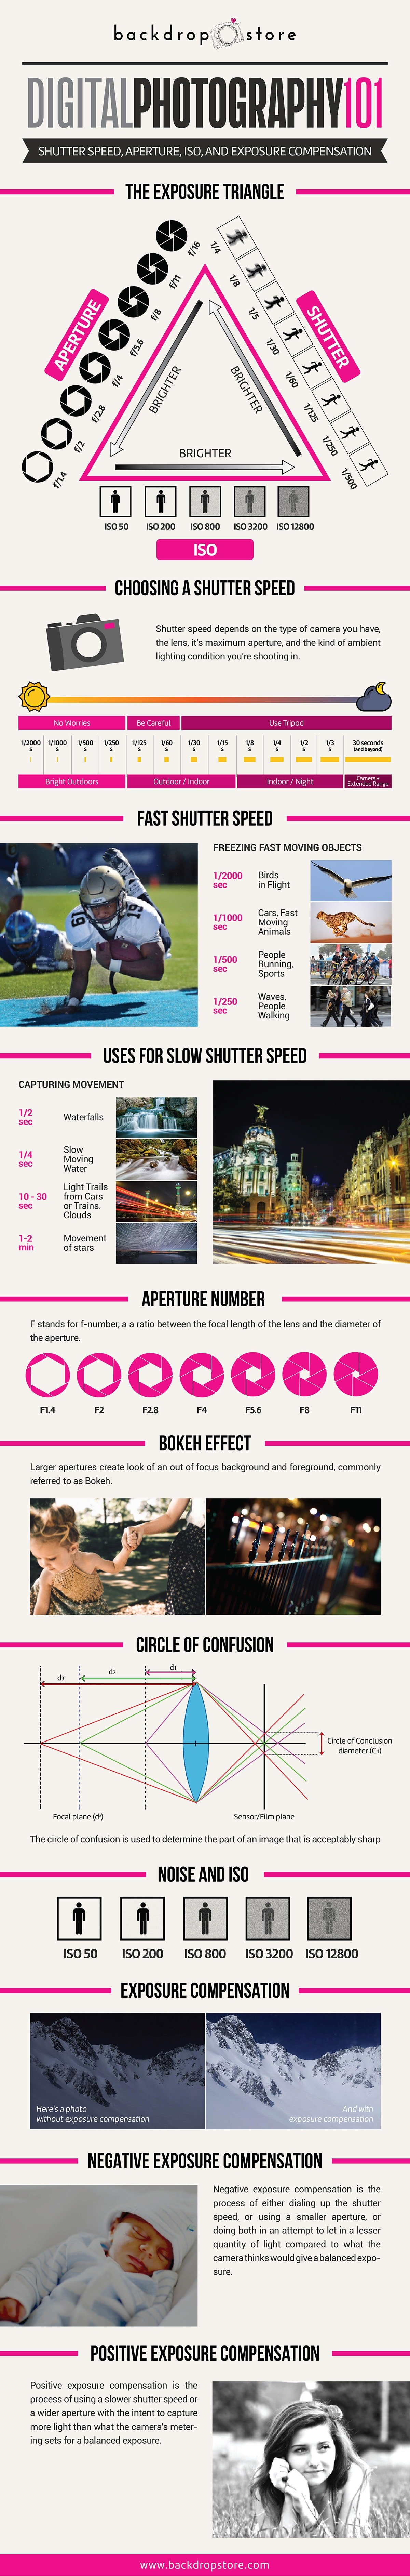 Digital Photography 101 - Shutter speed, Aperture, ISO and Exposure Compensation